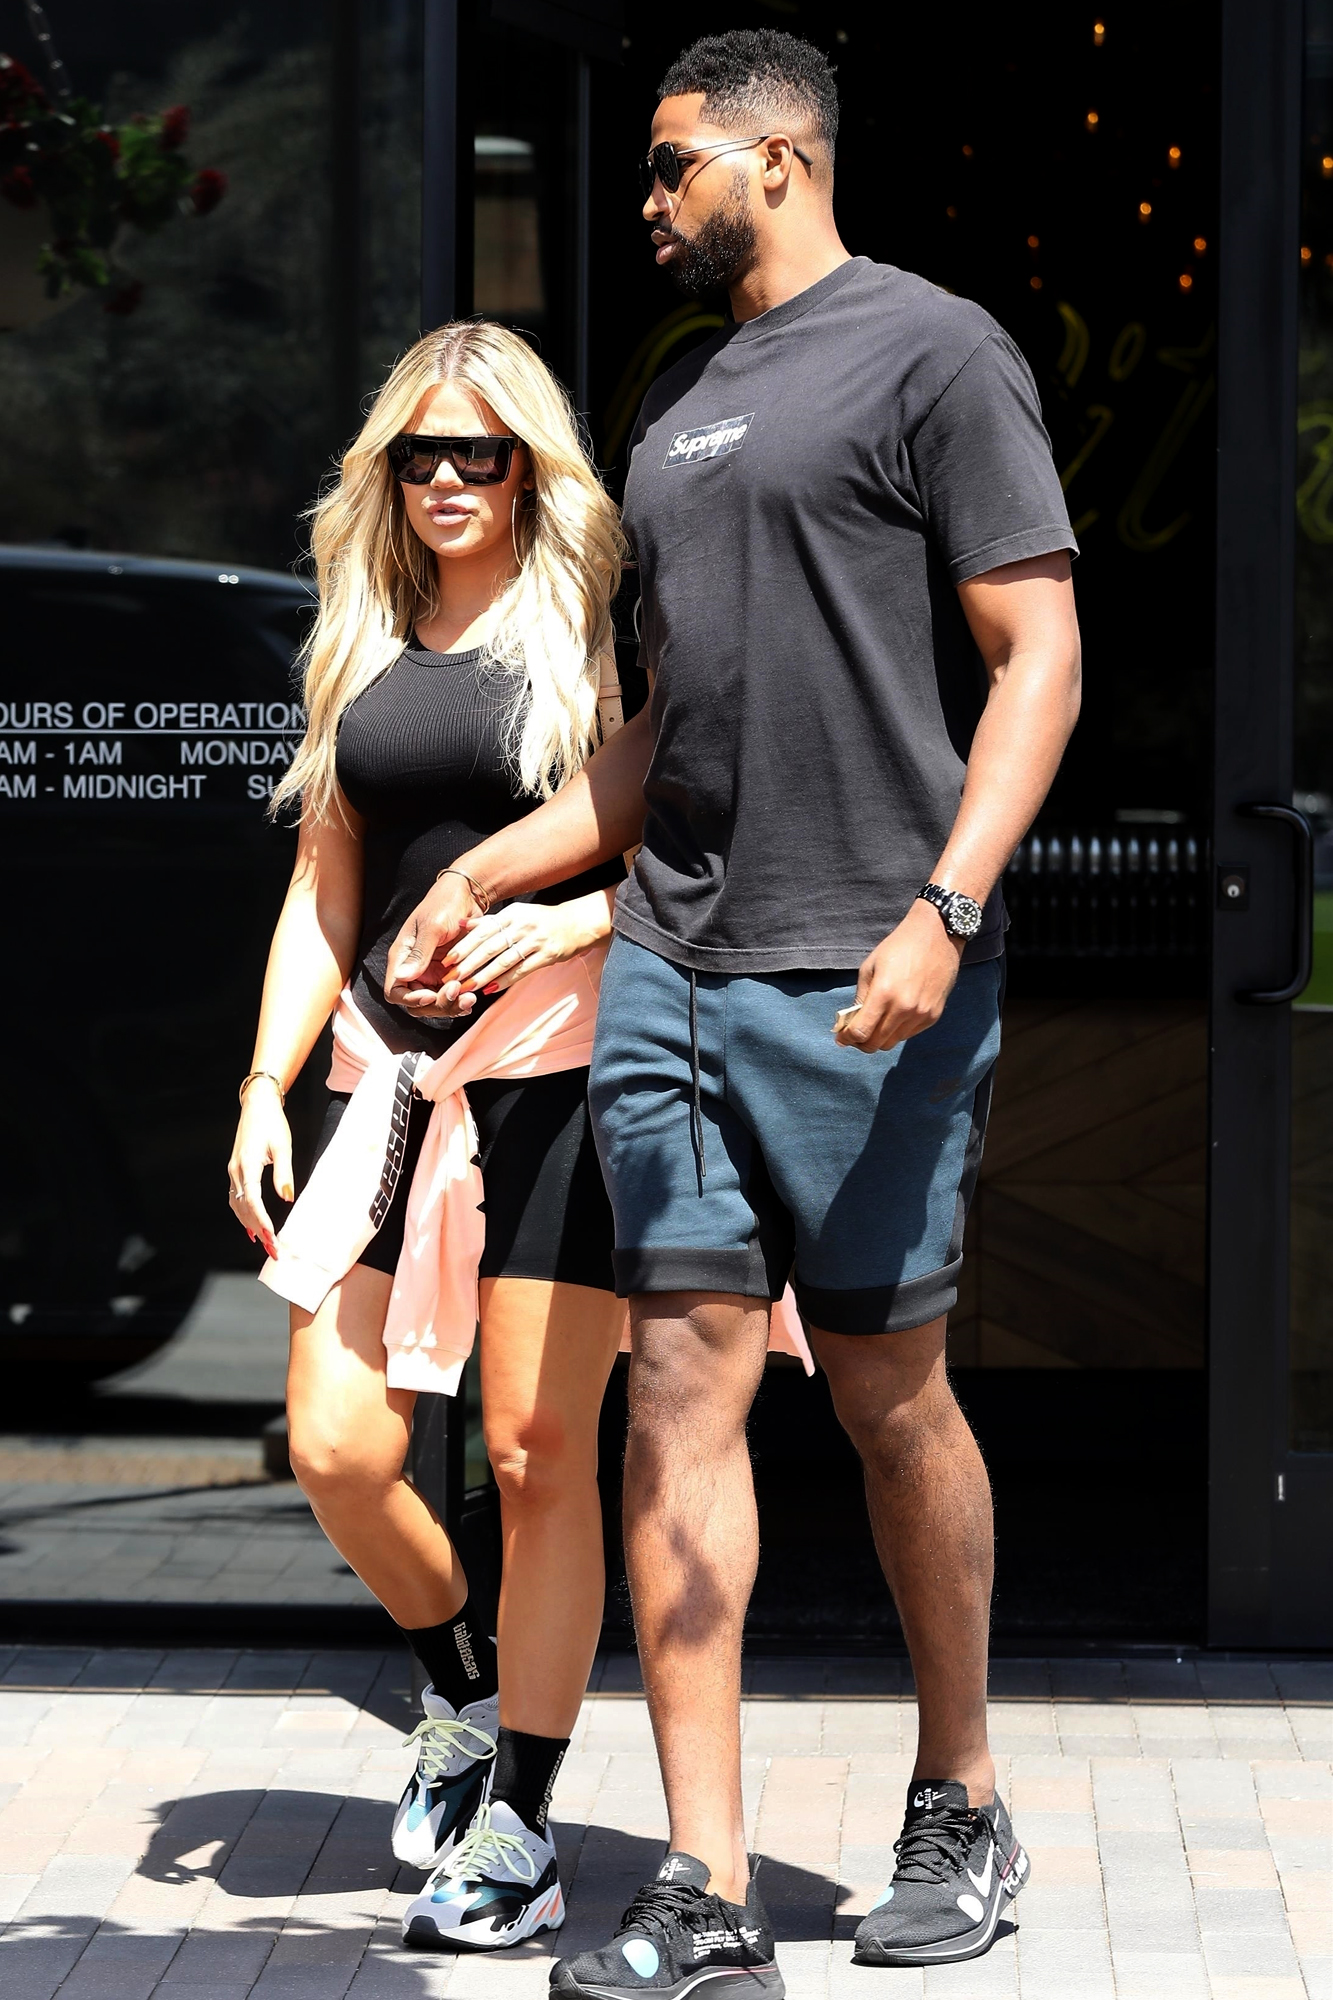 *EXCLUSIVE* Khloe Kardashian and Tristan enjoy their afternoon grabbing lunch together